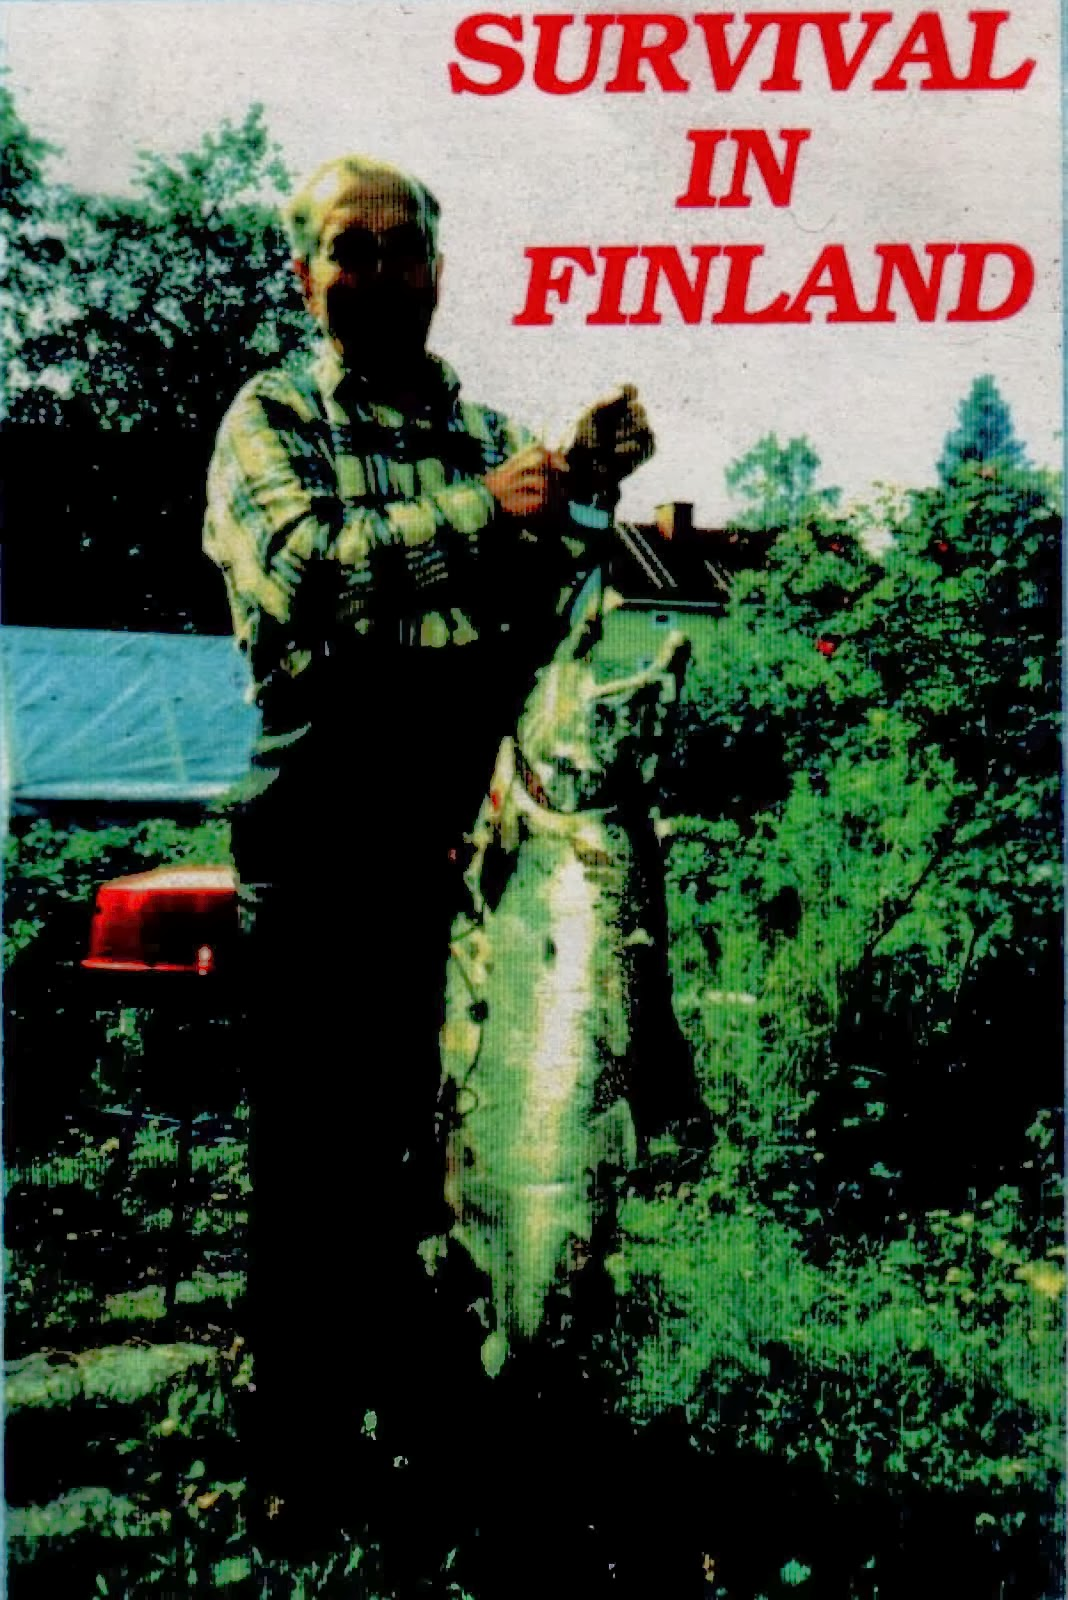 Handbook For Survival in Finland